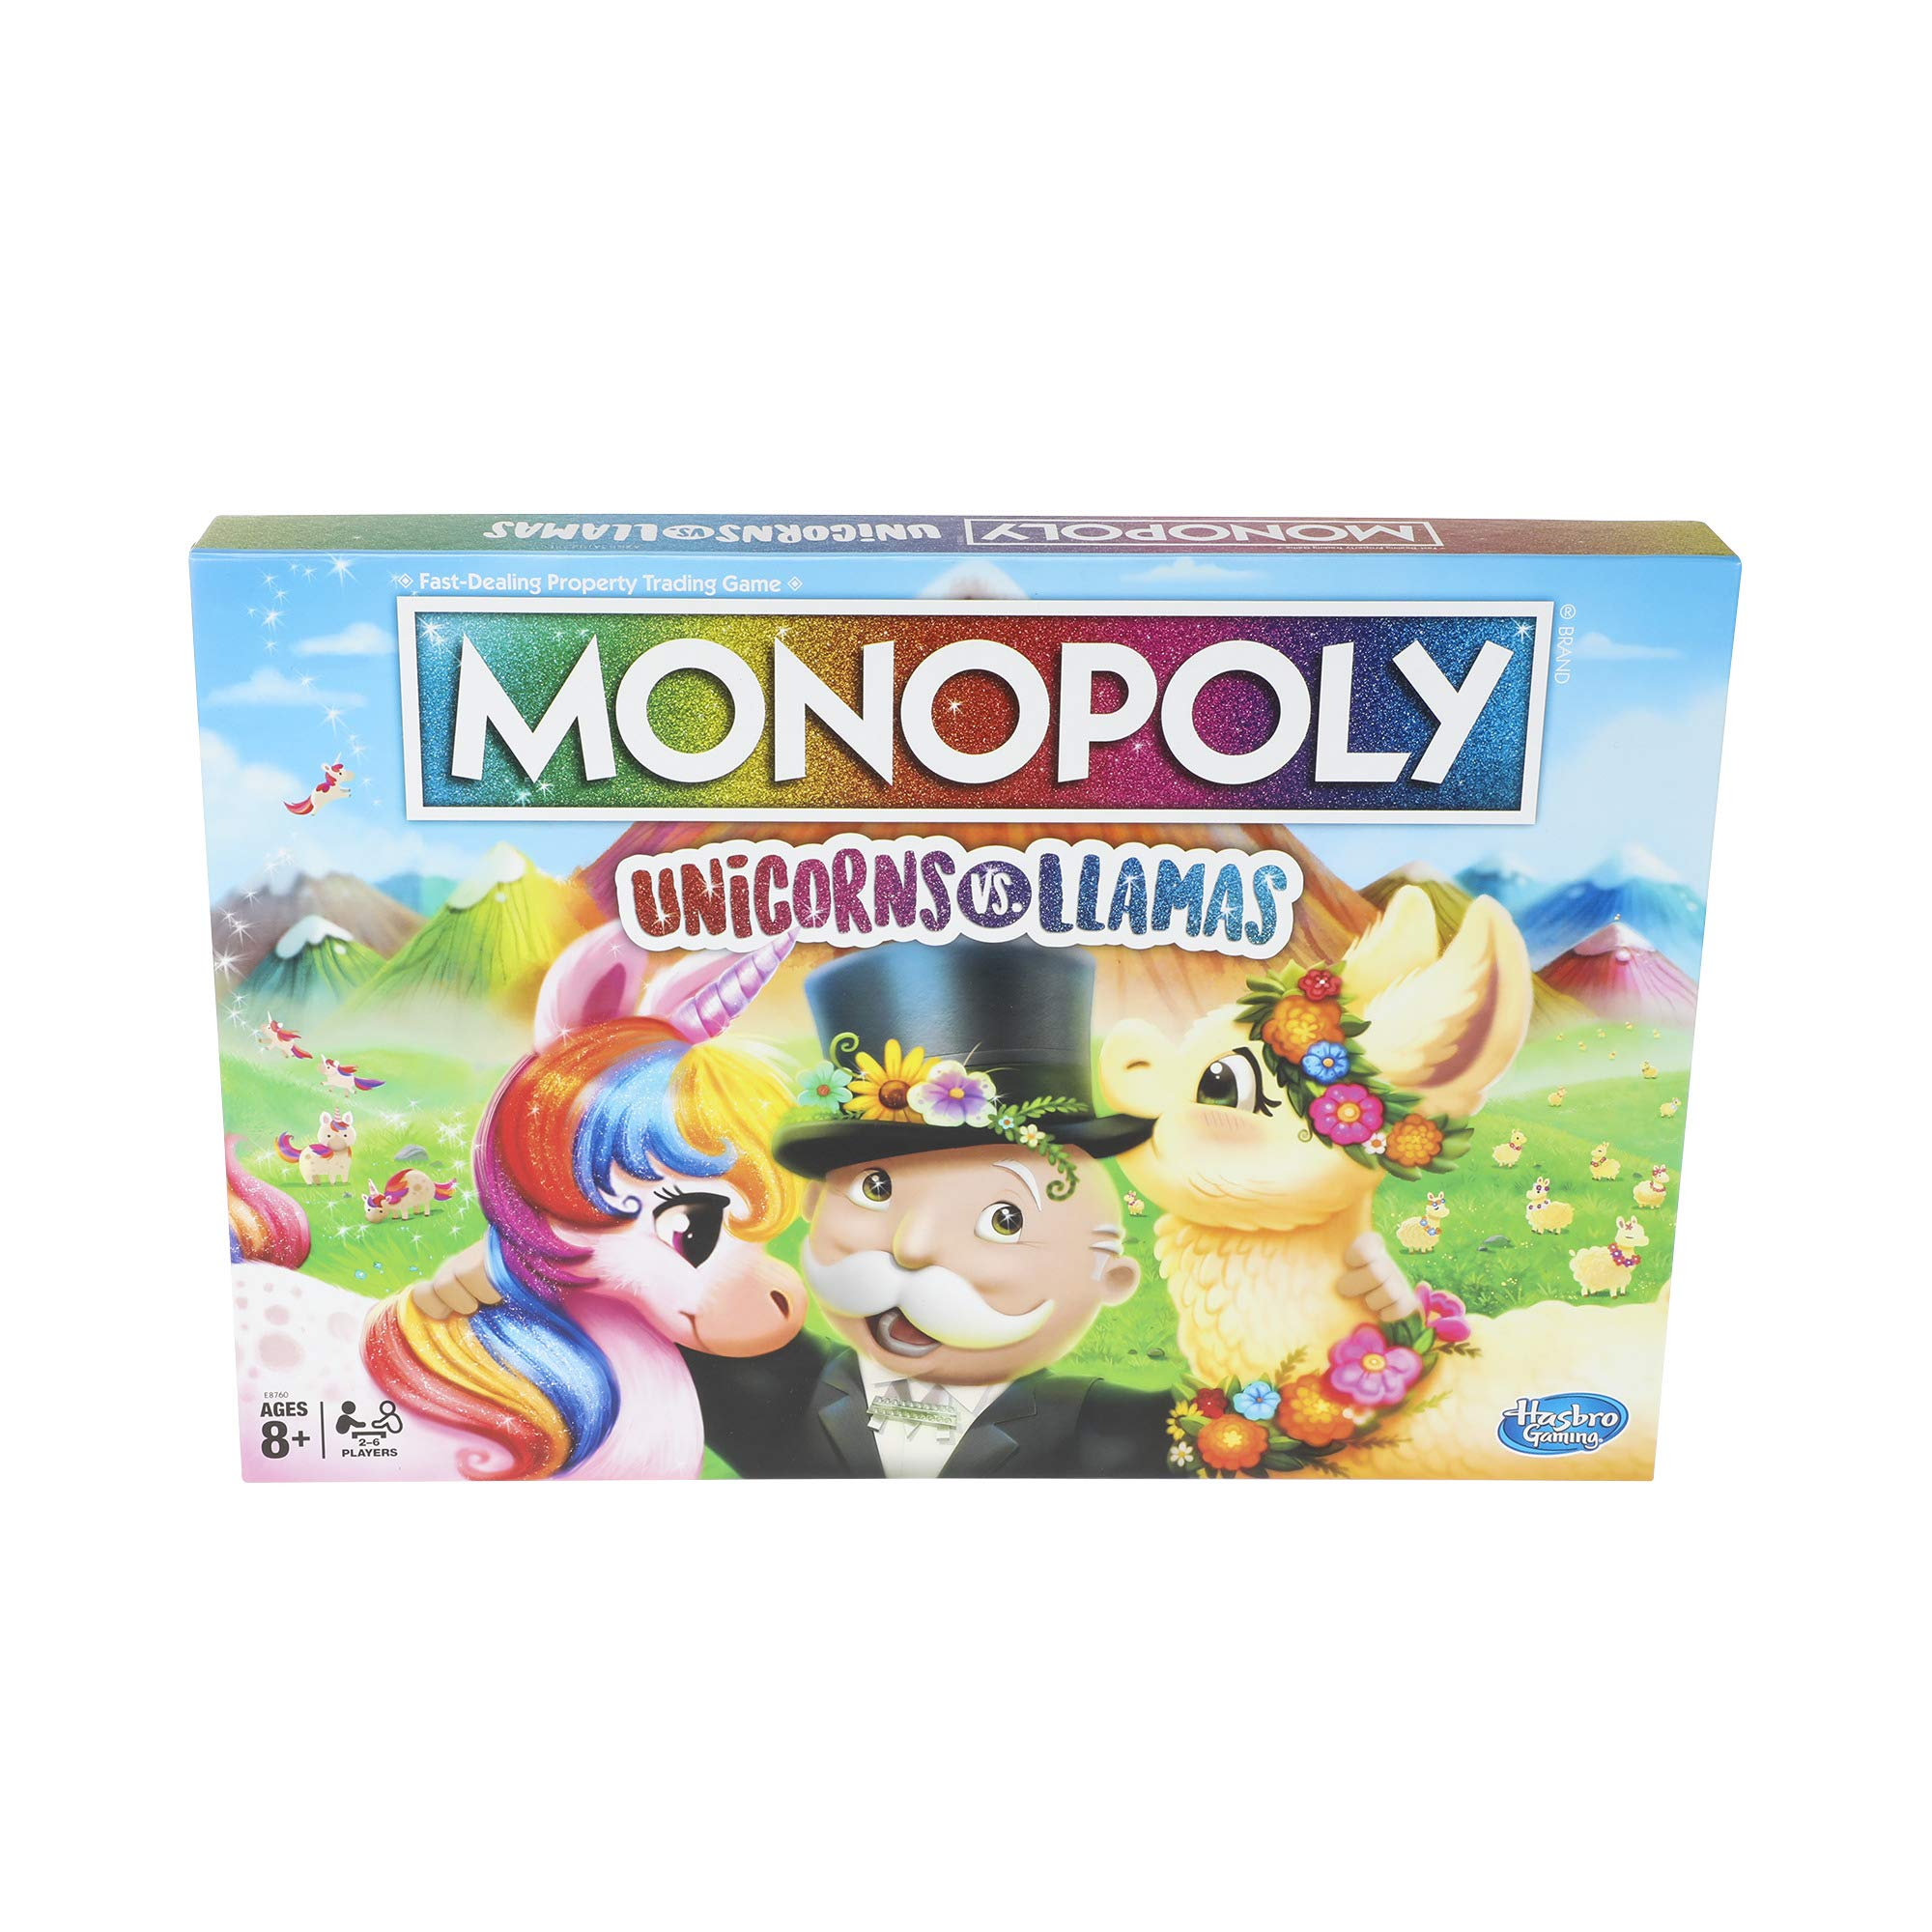 Monopoly Unicorns vs. Llamas Board Game for Ages 8 and Up; Play on Team Unicorn or Team Llama